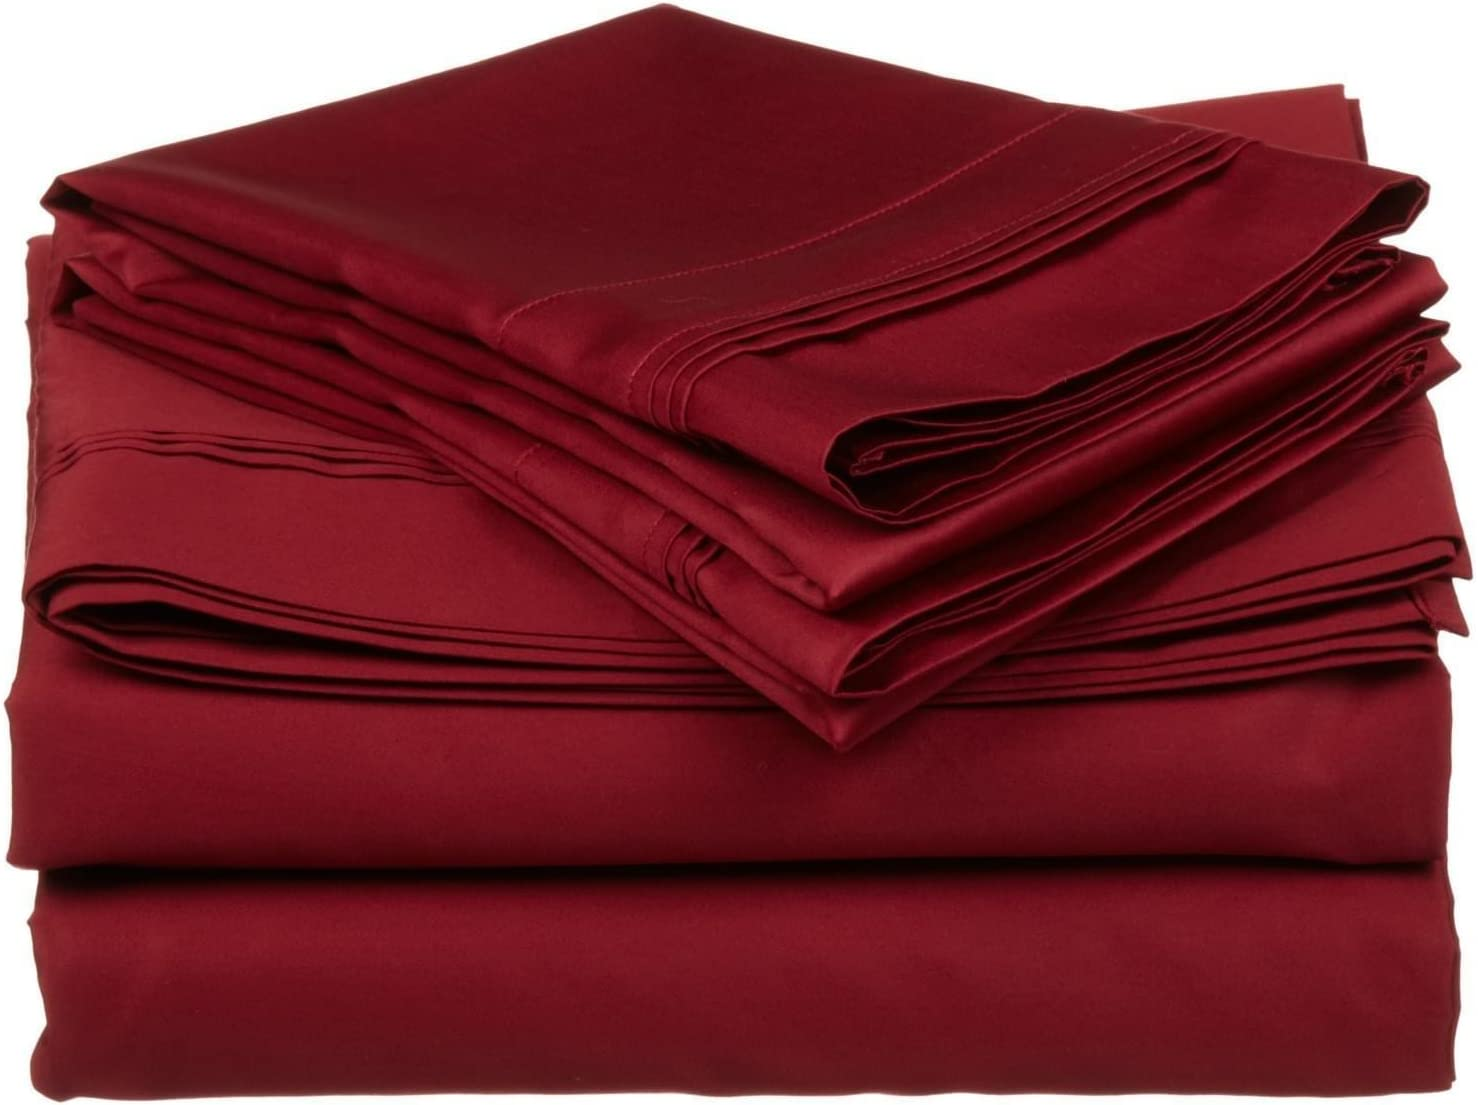 1 Fitted Sheet + 1 Flat Sheet and 2 Pillow Cases Max Staunch offers- Elegant 4-piece sheet set 100/% Cotton 400 TC Fit up to 35 cm mattress. Double, Burgundy solid